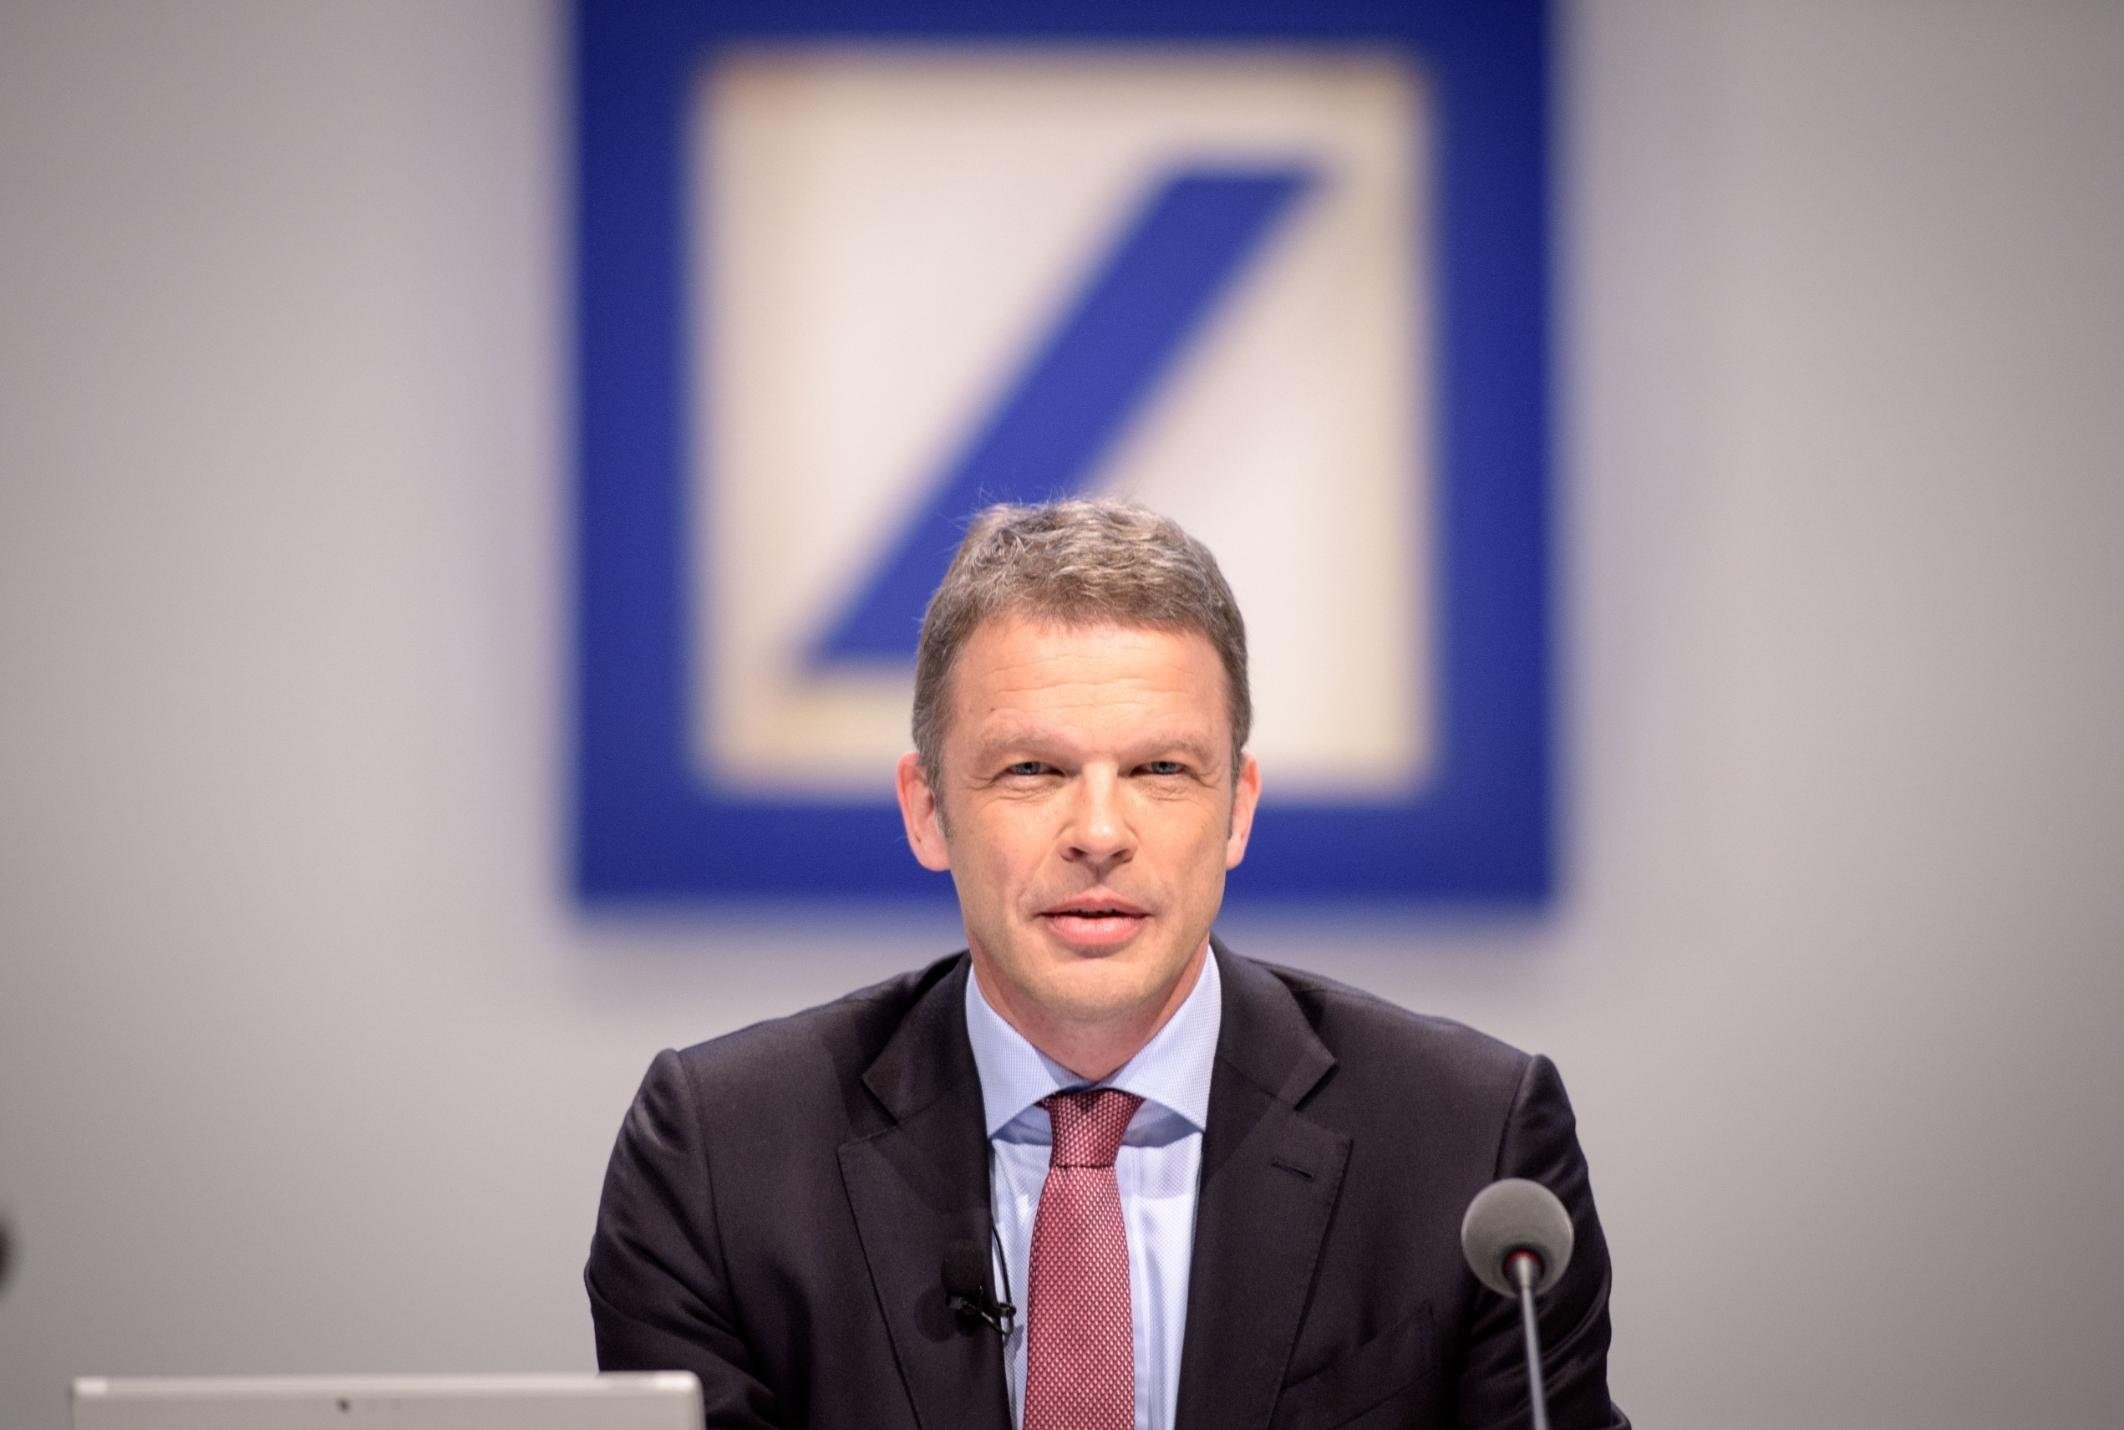 Deutsche Bank says expects Q2 profit above expectations